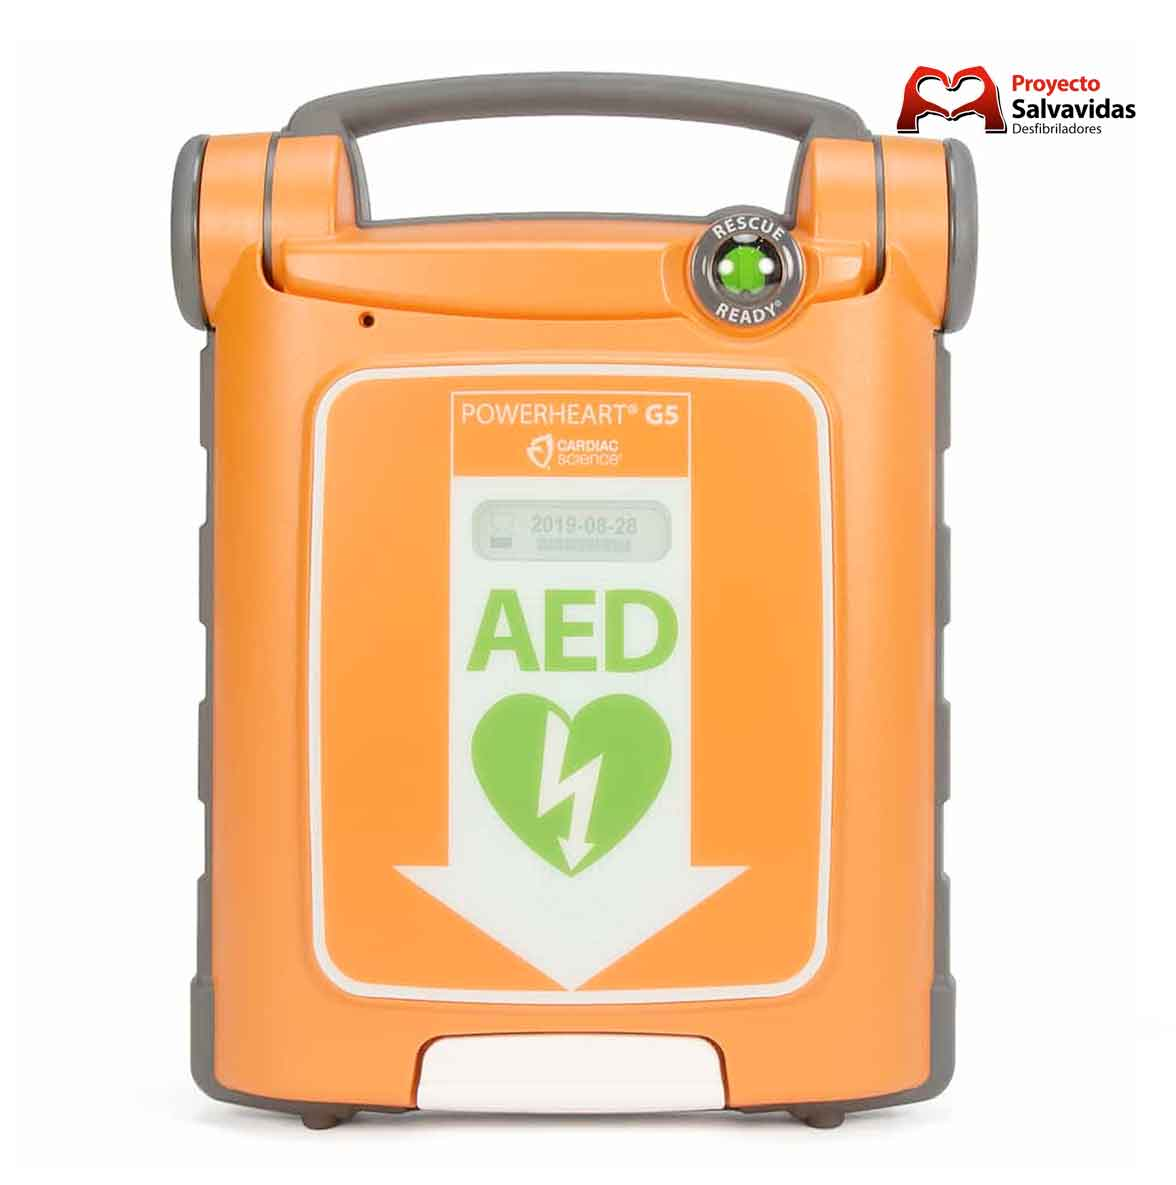 Défibrillateur en vente / location Cardiac Science Powerheart G5